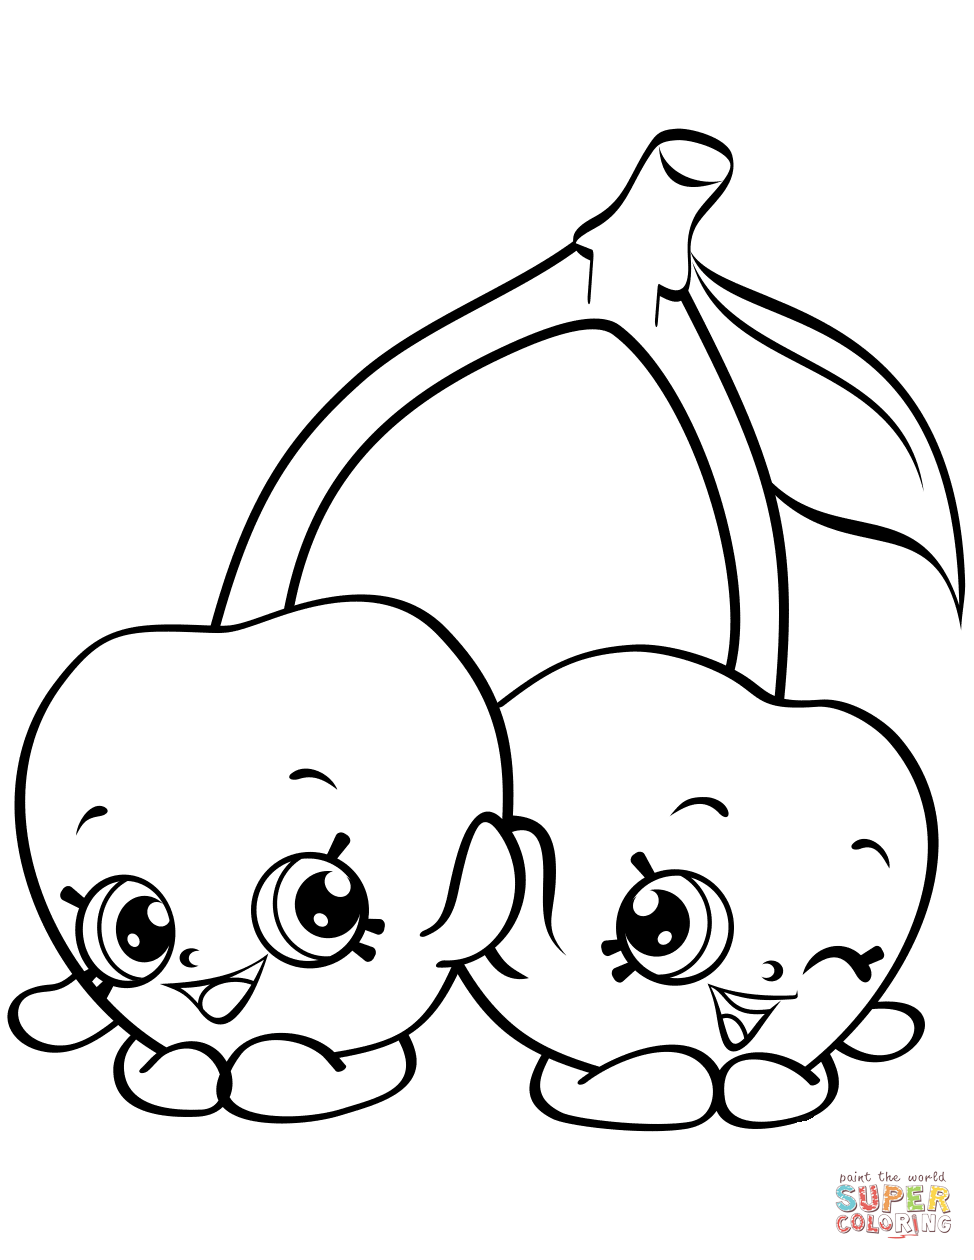 Shopkin Wobbly Jelly Colouring Pages Page 2 Sketch Coloring Page Coloring Pages